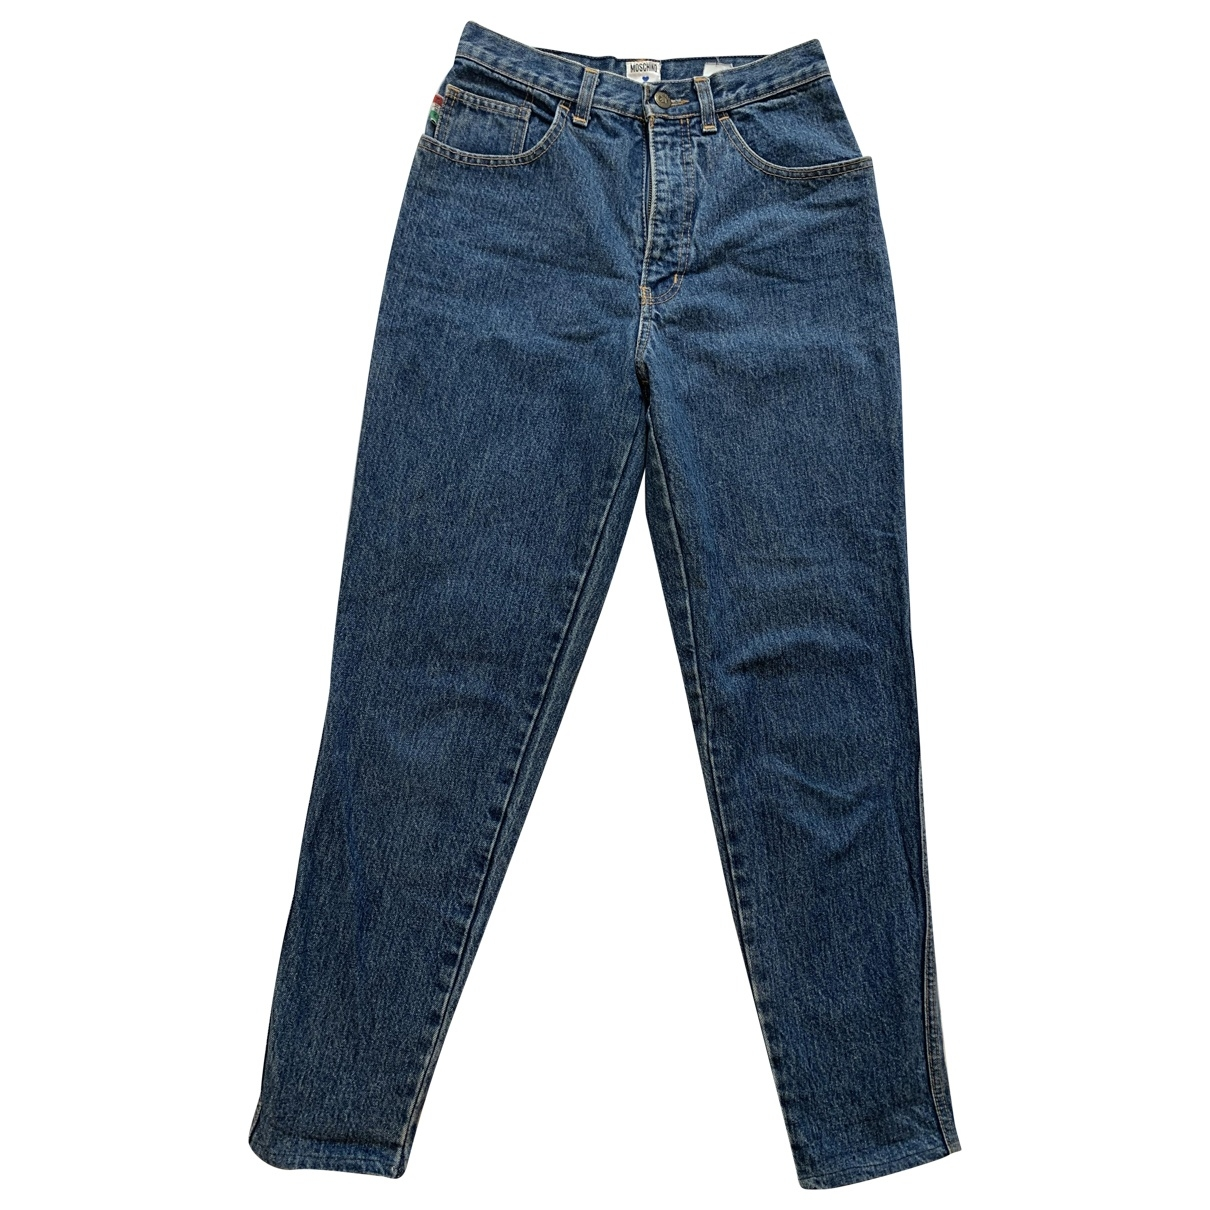 Moschino \N Blue Denim - Jeans Jeans for Women 29 US